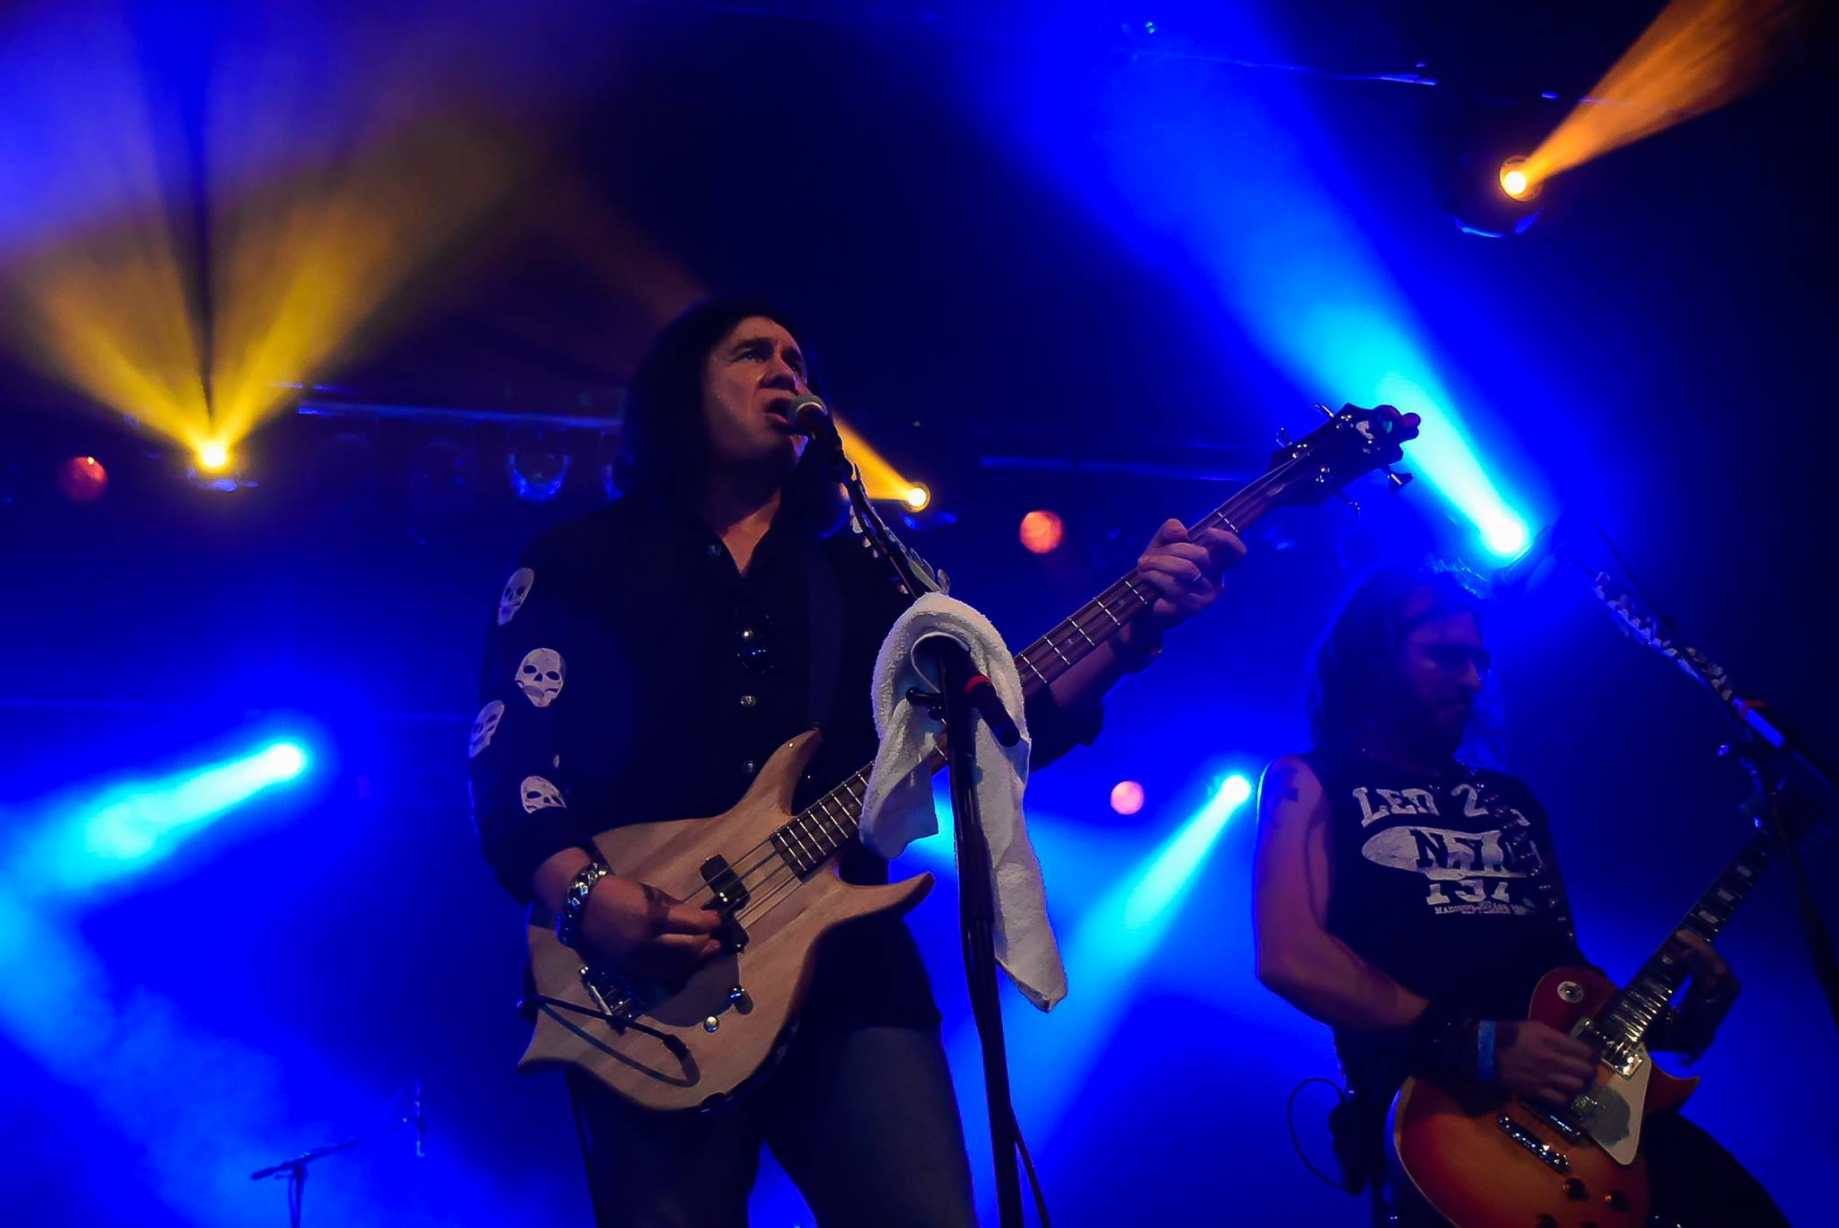 Gene Simmons Concert (credit Paula A. Lively)